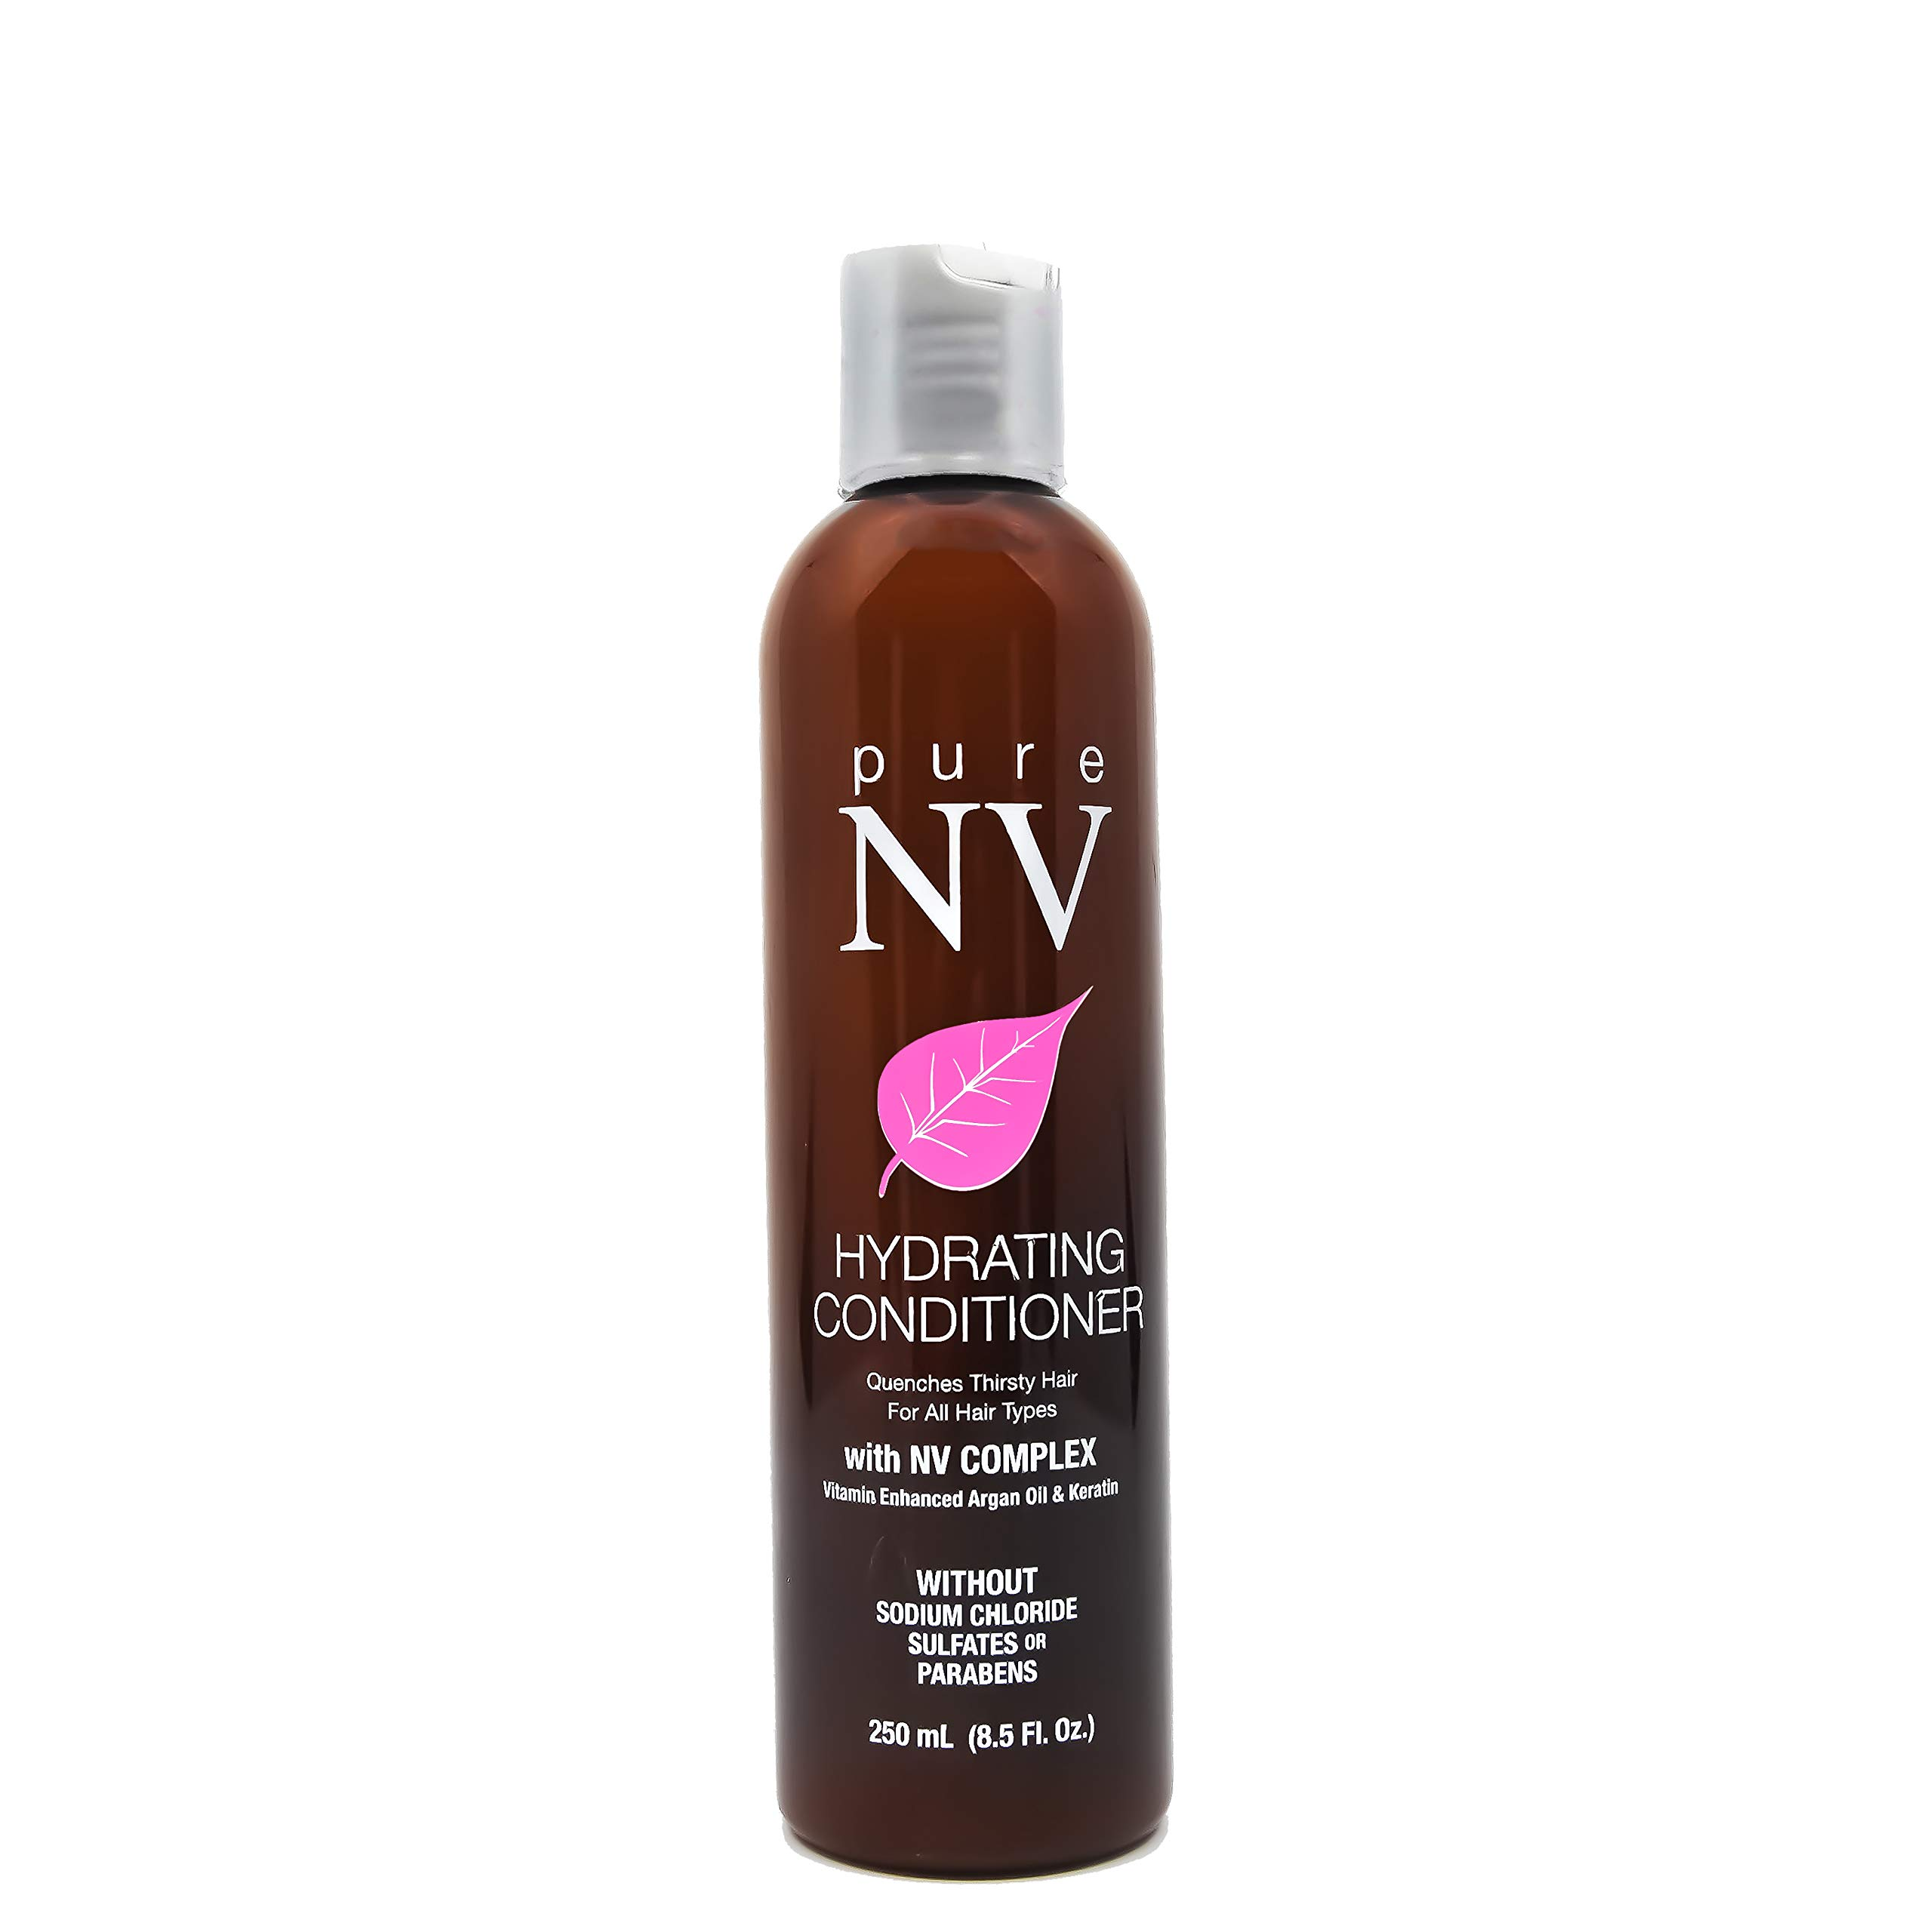 Pure NV Hydrating Conditioner for dry and damaged hair. Infused with Argan Oil, Keratin, & Collagen, along with other vitamins and nutrients (8.5oz)